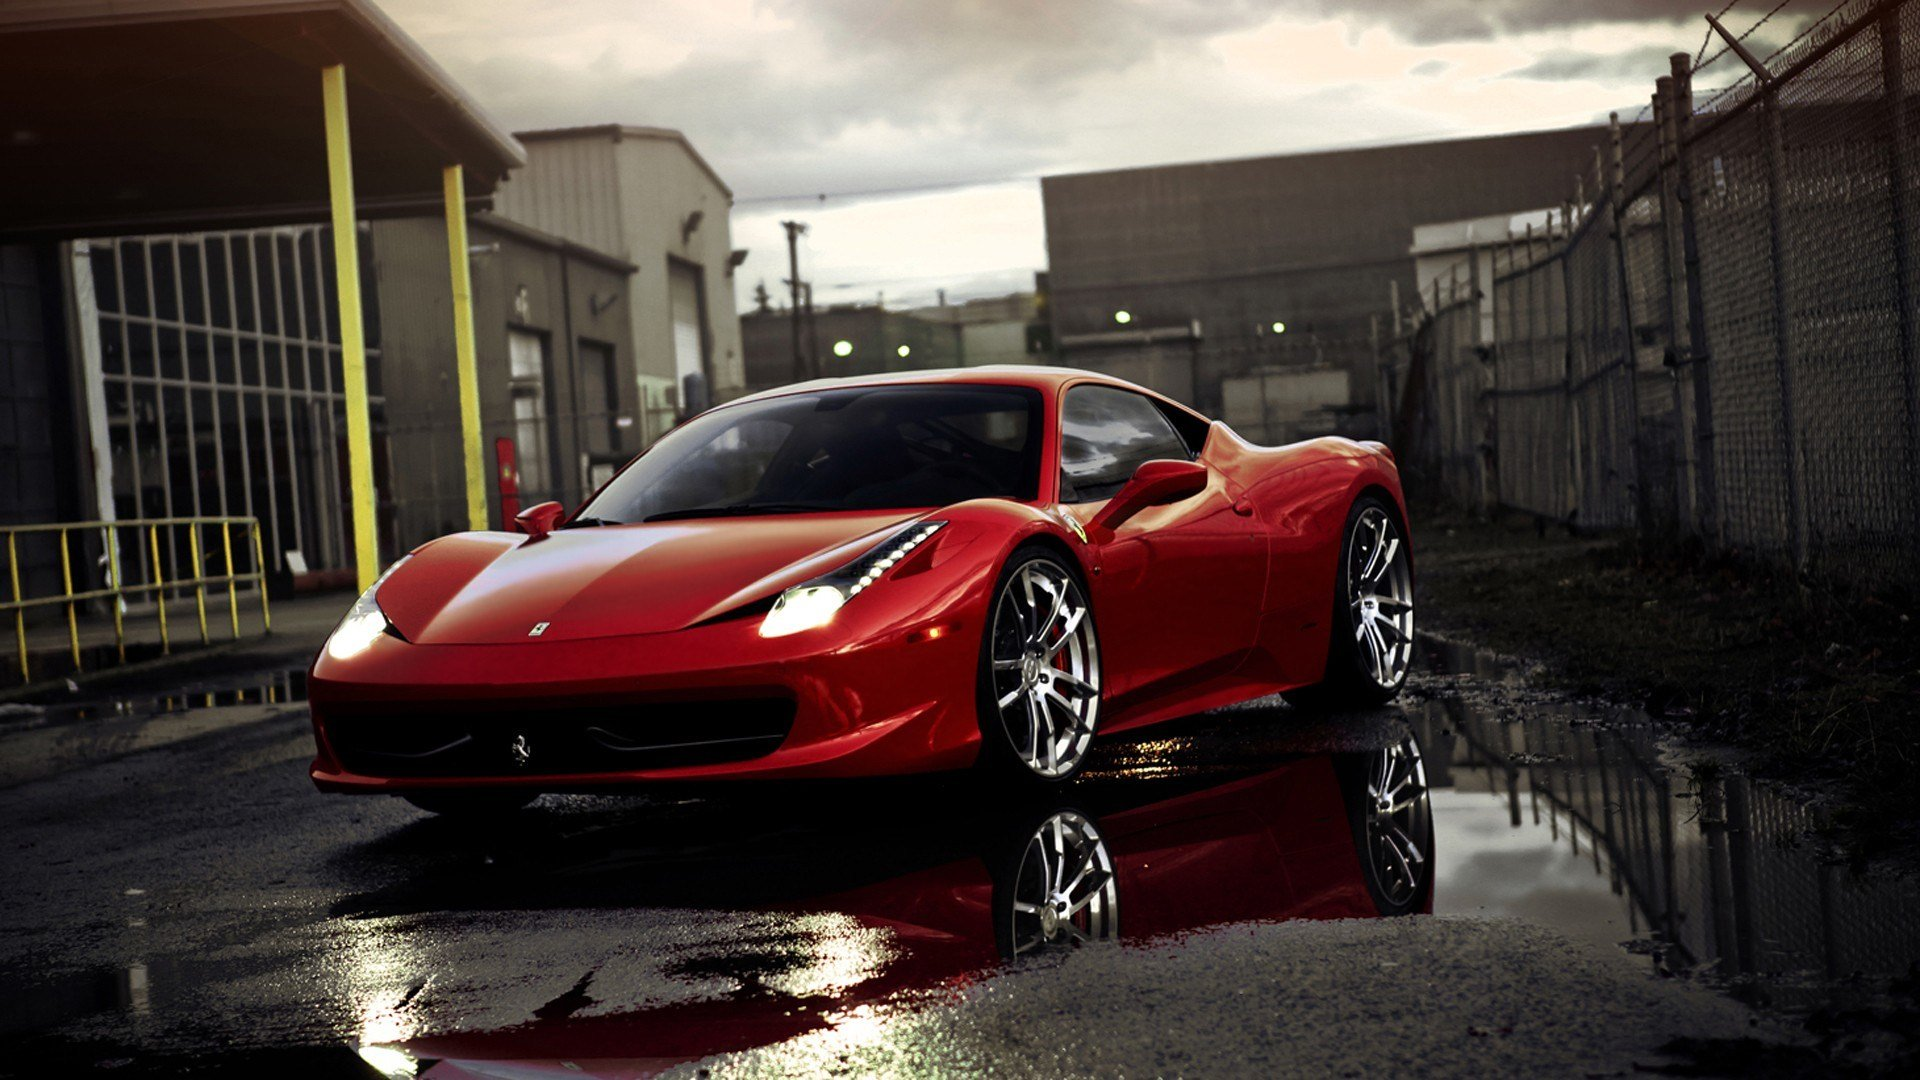 New Ferrari Full Hd Wallpaper And Background Image 1920X1080 On This Month